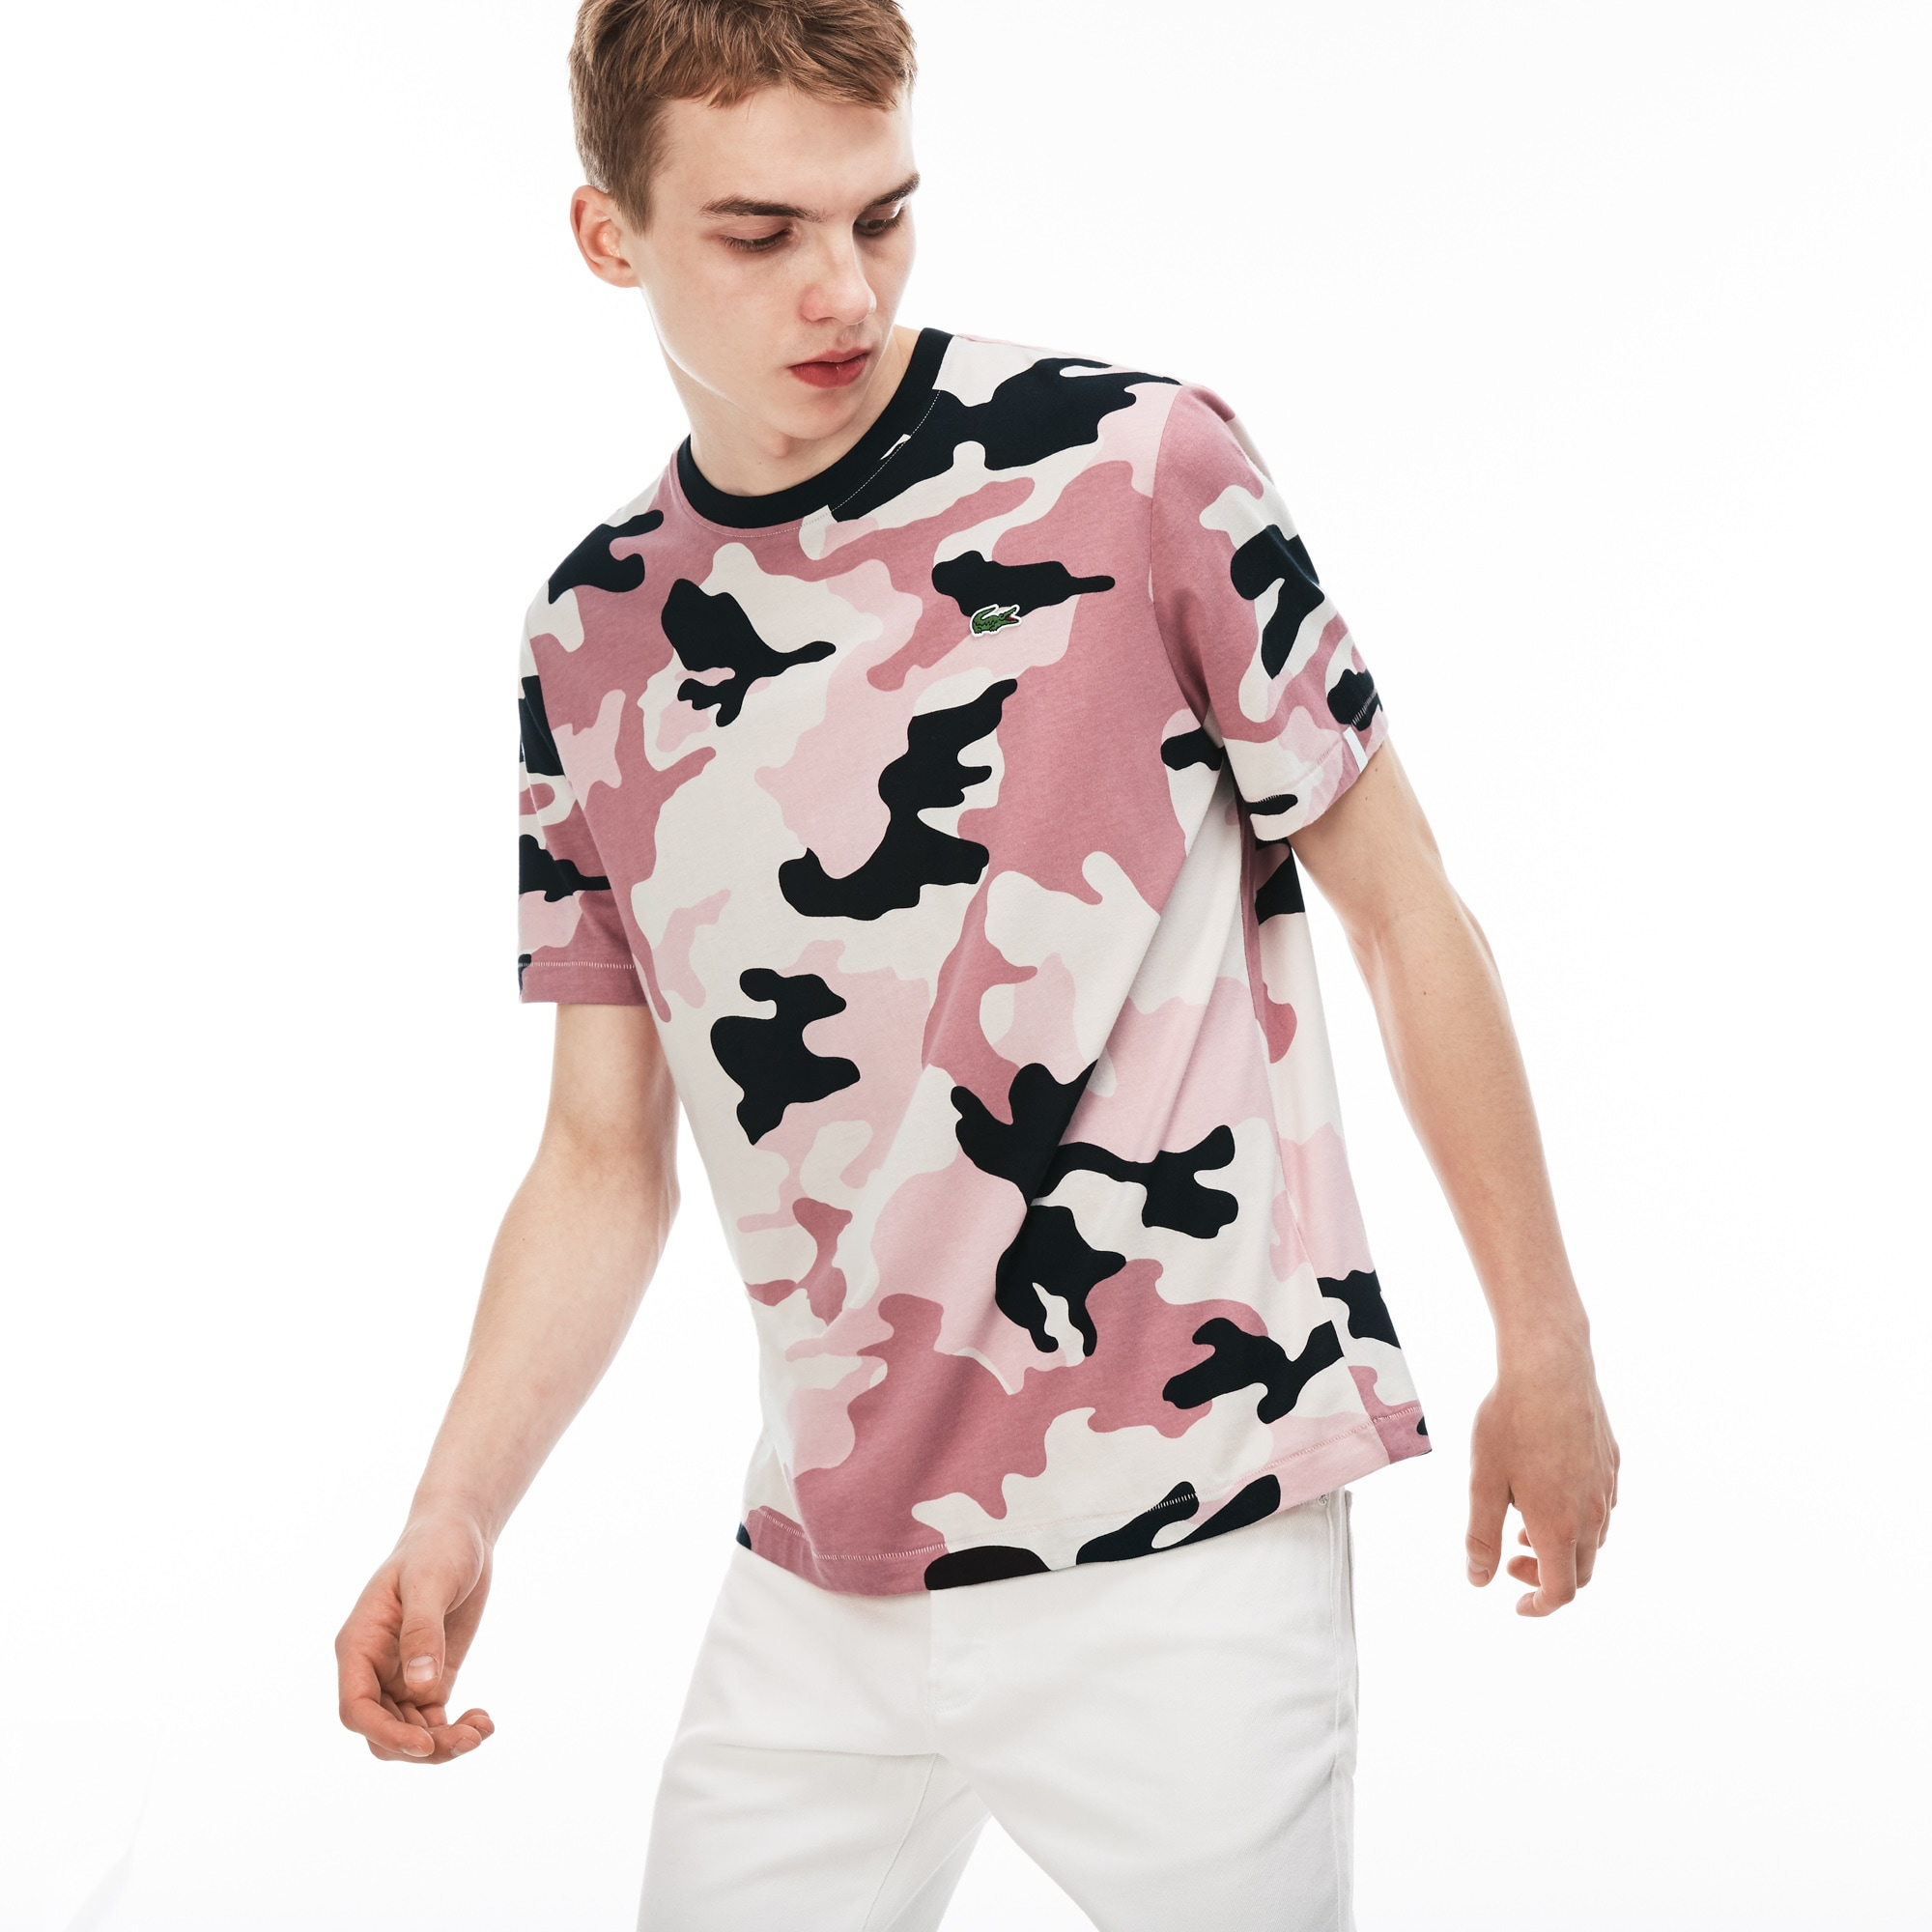 Men's Lacoste LIVE Crew Neck Camouflage Print Jersey T-shirt